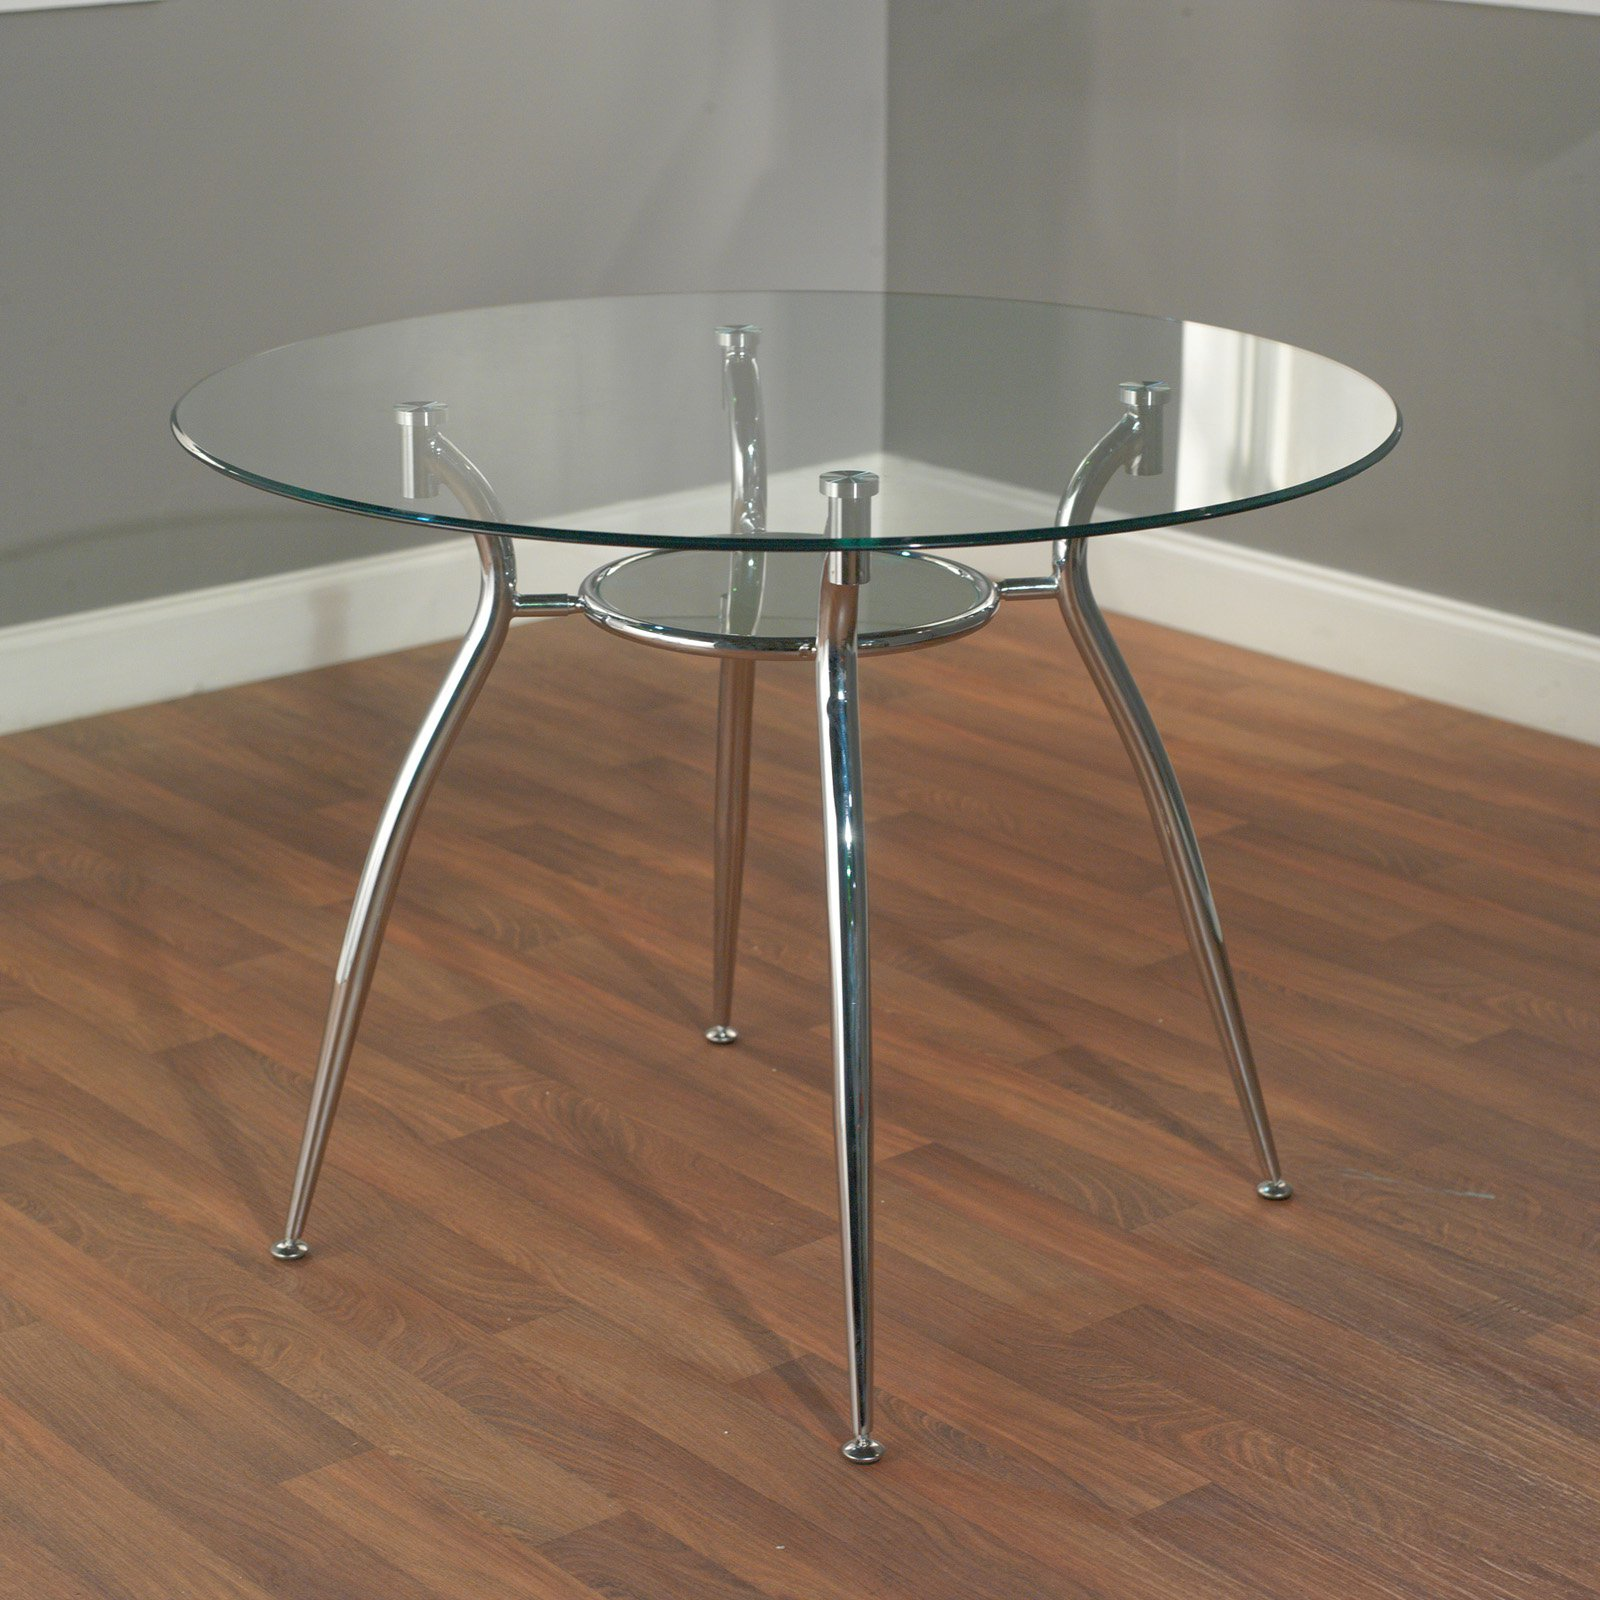 Mabel Glass Top And Metal Dining Table, Box 1 Of 2